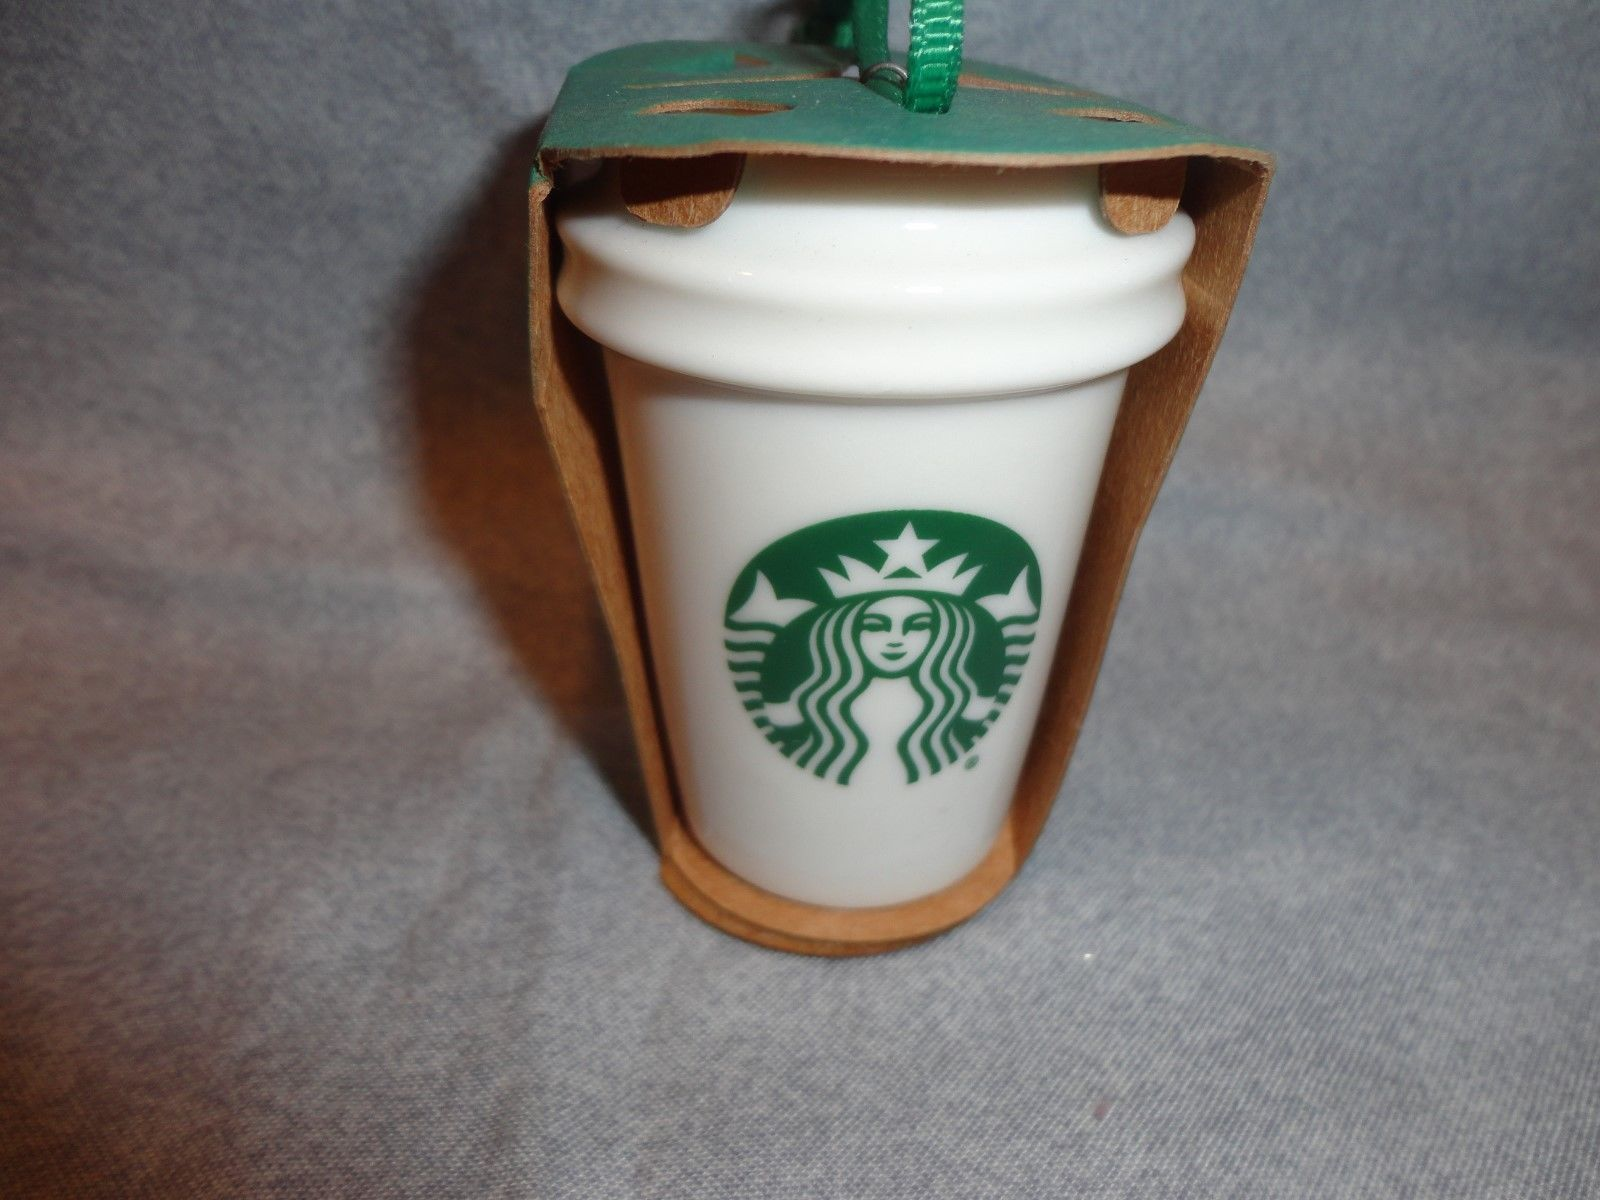 STARBUCKS 2016 GREEN MERMAID CUP TO GO CUP ORNAMENT CERAMIC NEW GRN packag